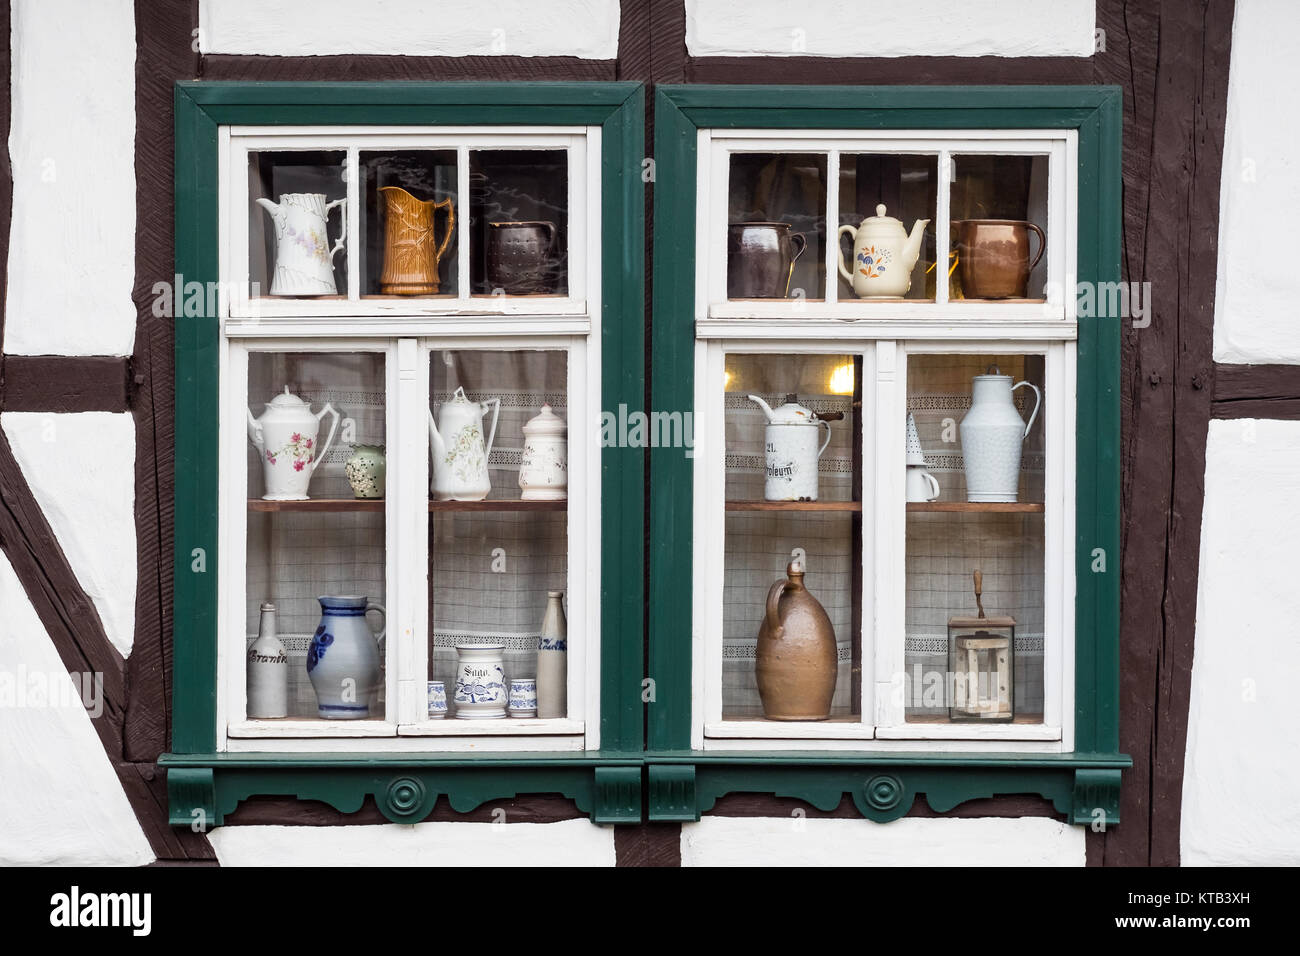 window decorated with coffee pots Stock Photo